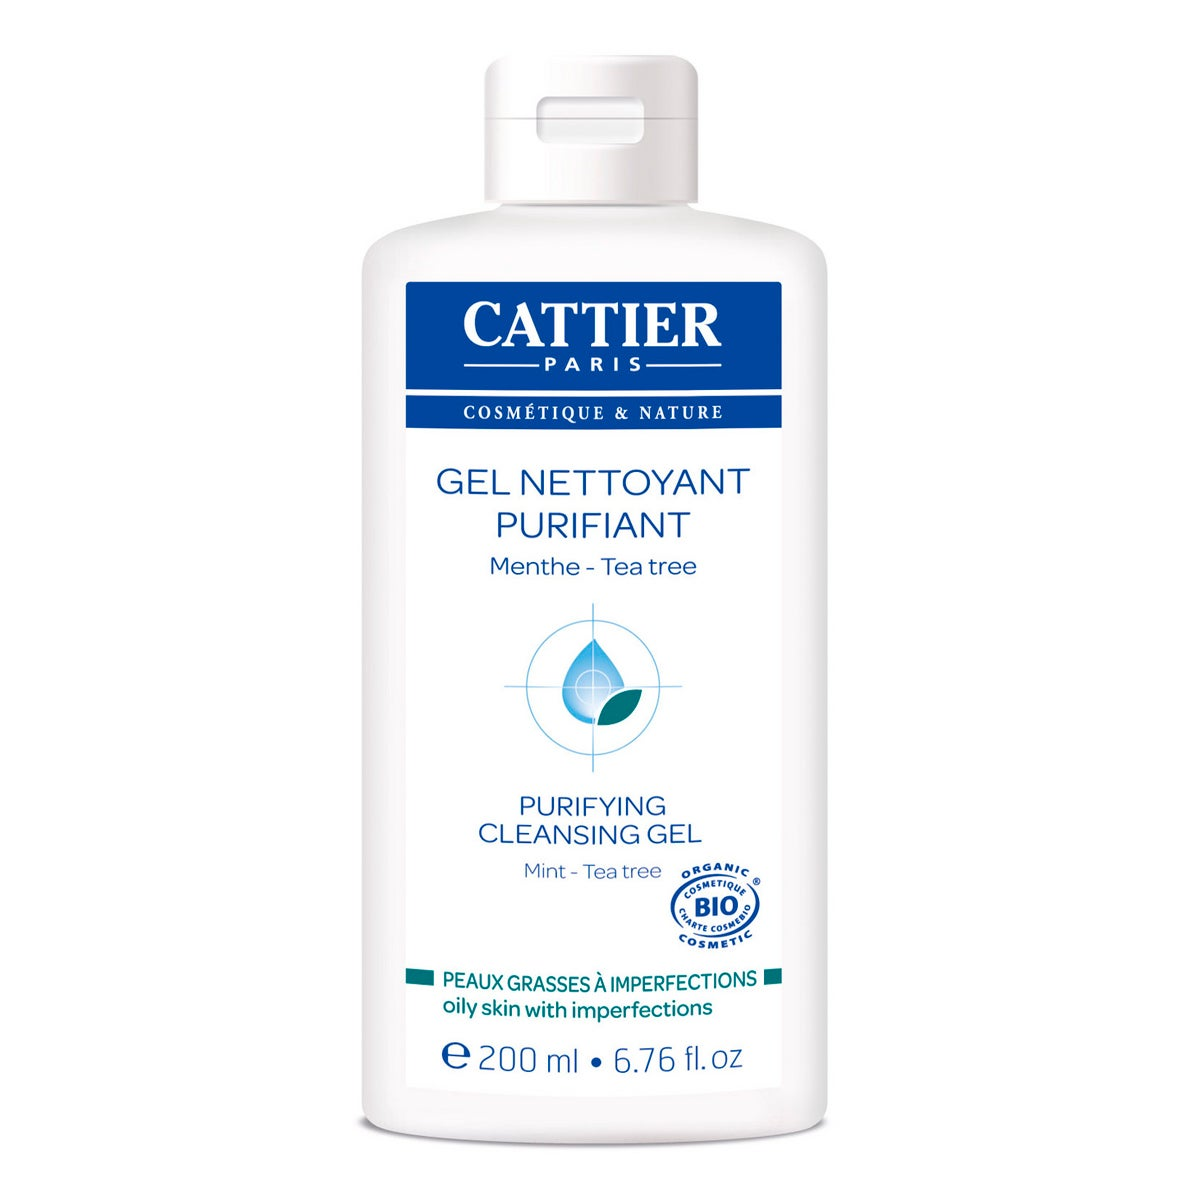 Cattier Paris Purifying Cleansing Gel